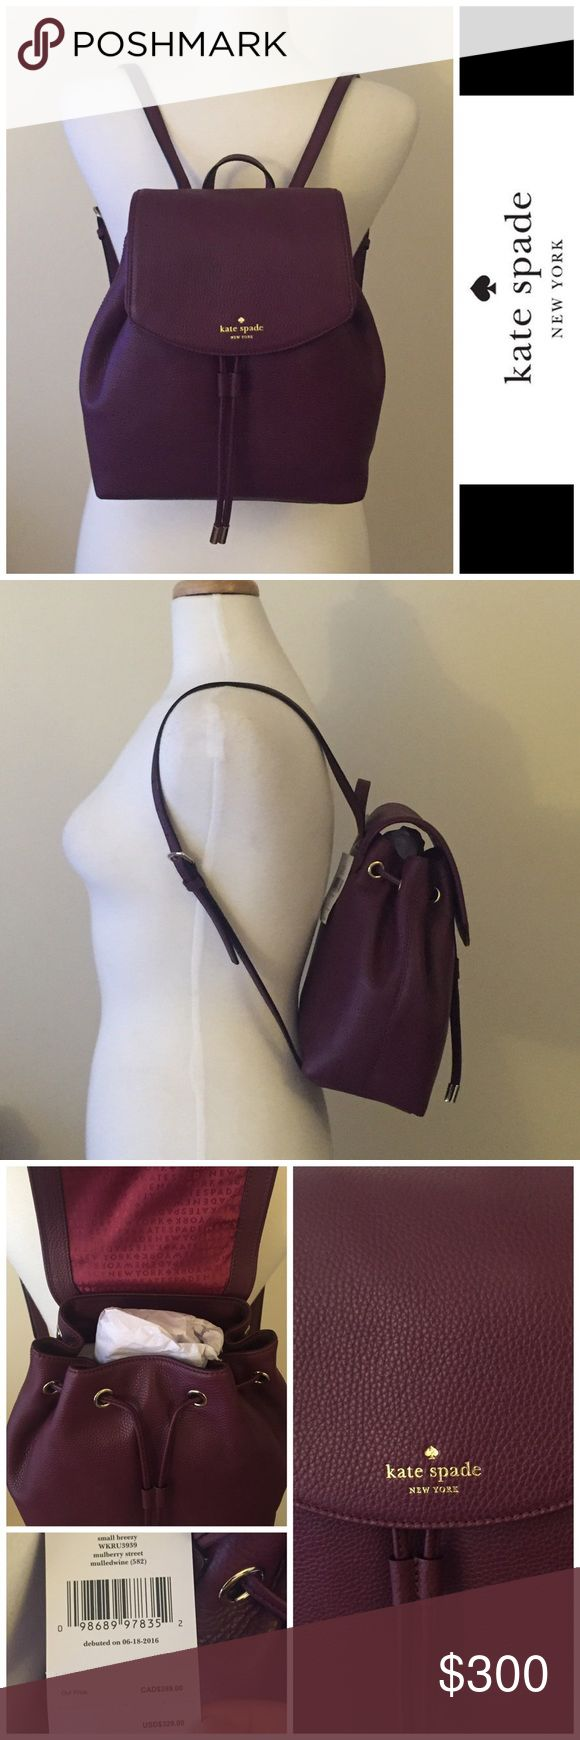 ⚡️FINAL DAY⚡️NWT Kate Spade Small backpack NWT Kate Spade Small backpack - deep purple. Strings to close in the front. Top flap close down but no front button. Super cute :) PRICE FIRM. ⚡️FINAL DAY⚡️ kate spade Bags Backpacks